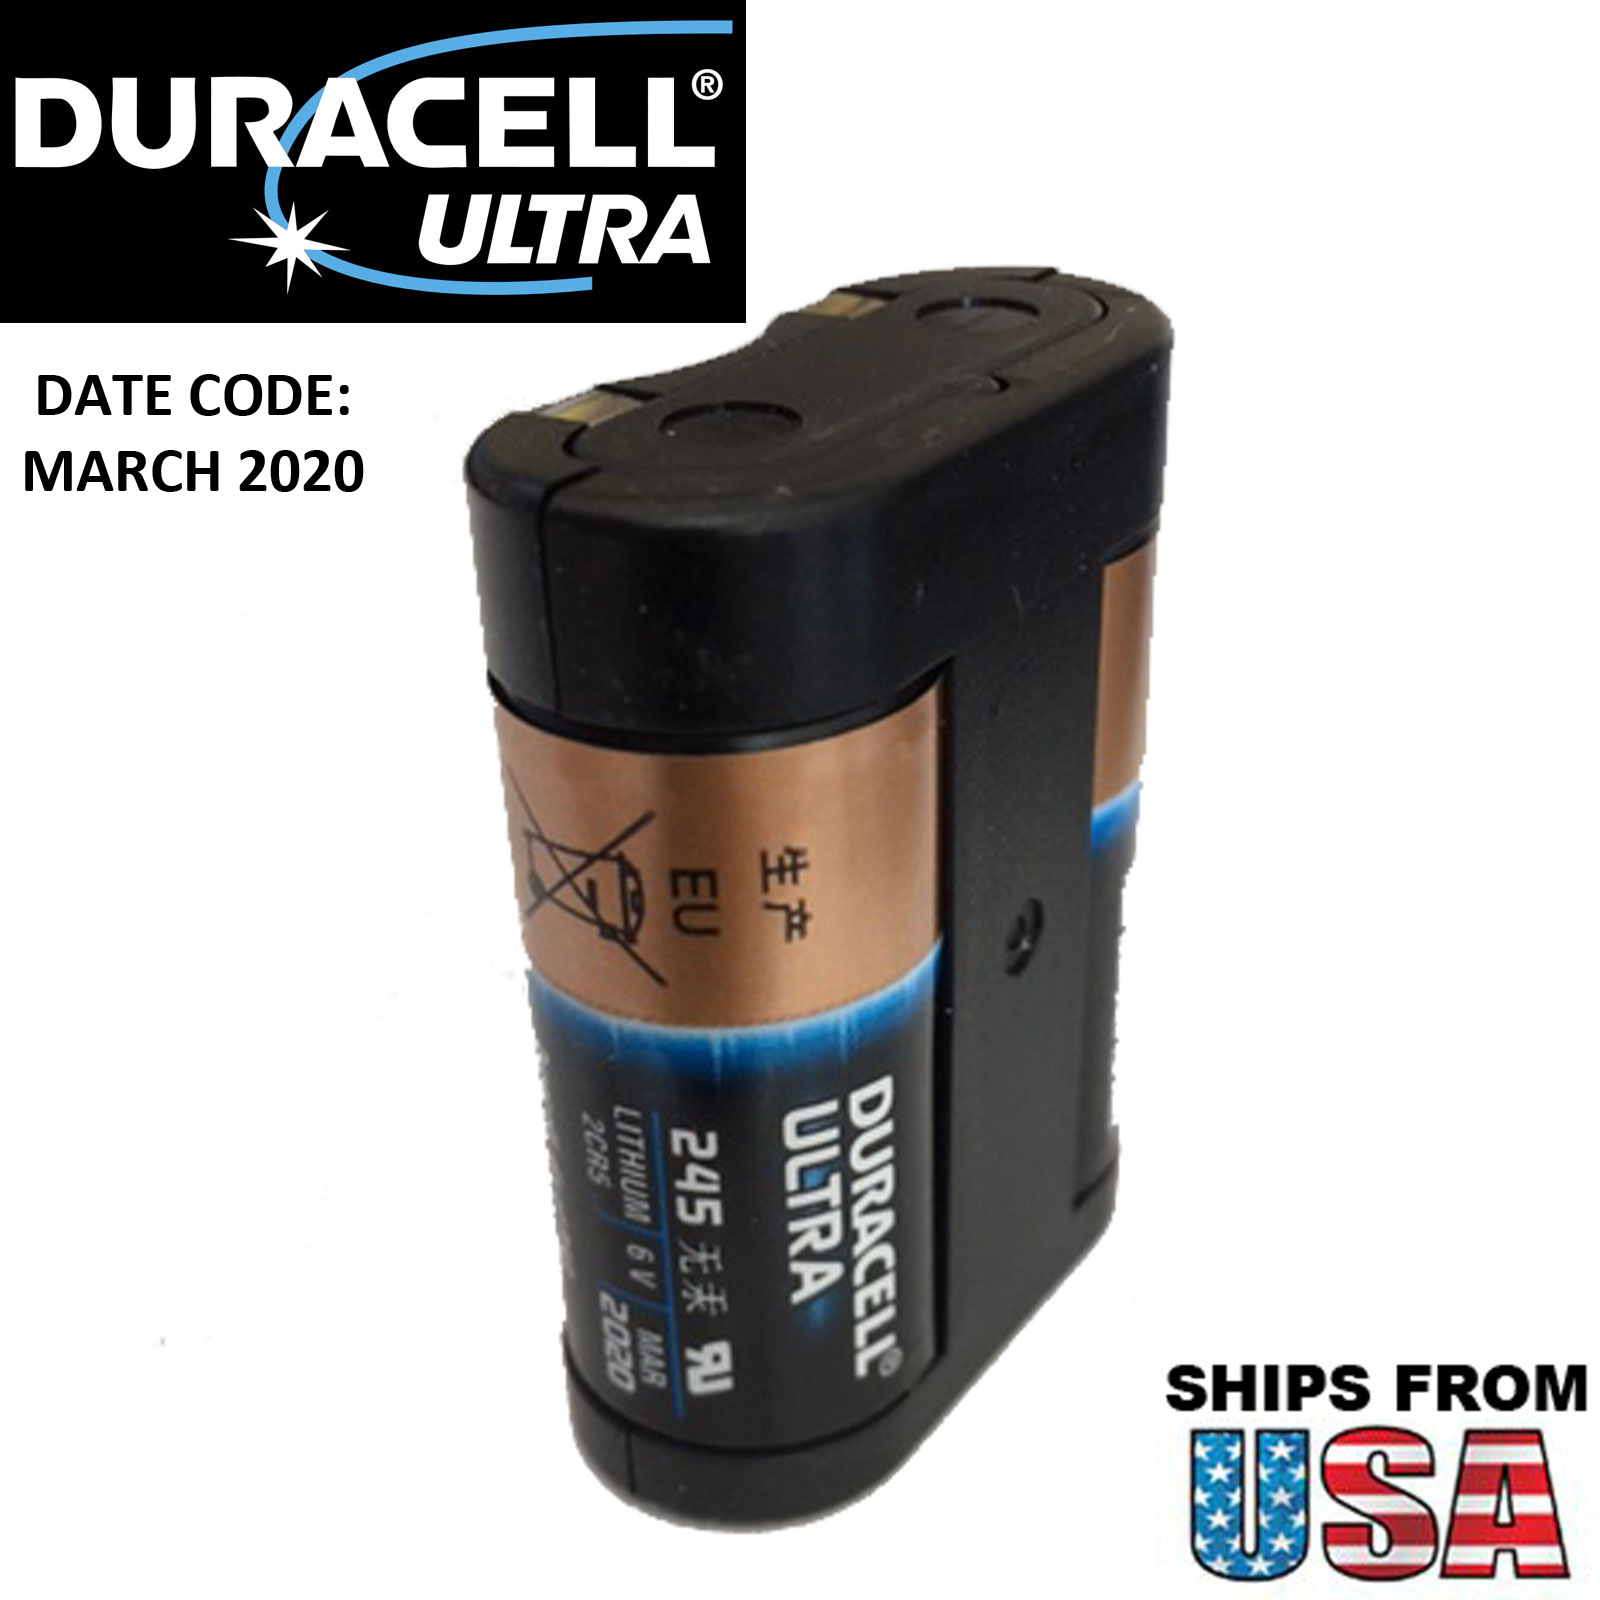 Duracell ultra dl245 photo lithium 6v battery replaces 2cr5 elcr5 duracell ultra dl245 photo lithium 6v battery replaces 2cr5 elcr5 245 2cr5m 2r5 fandeluxe Choice Image